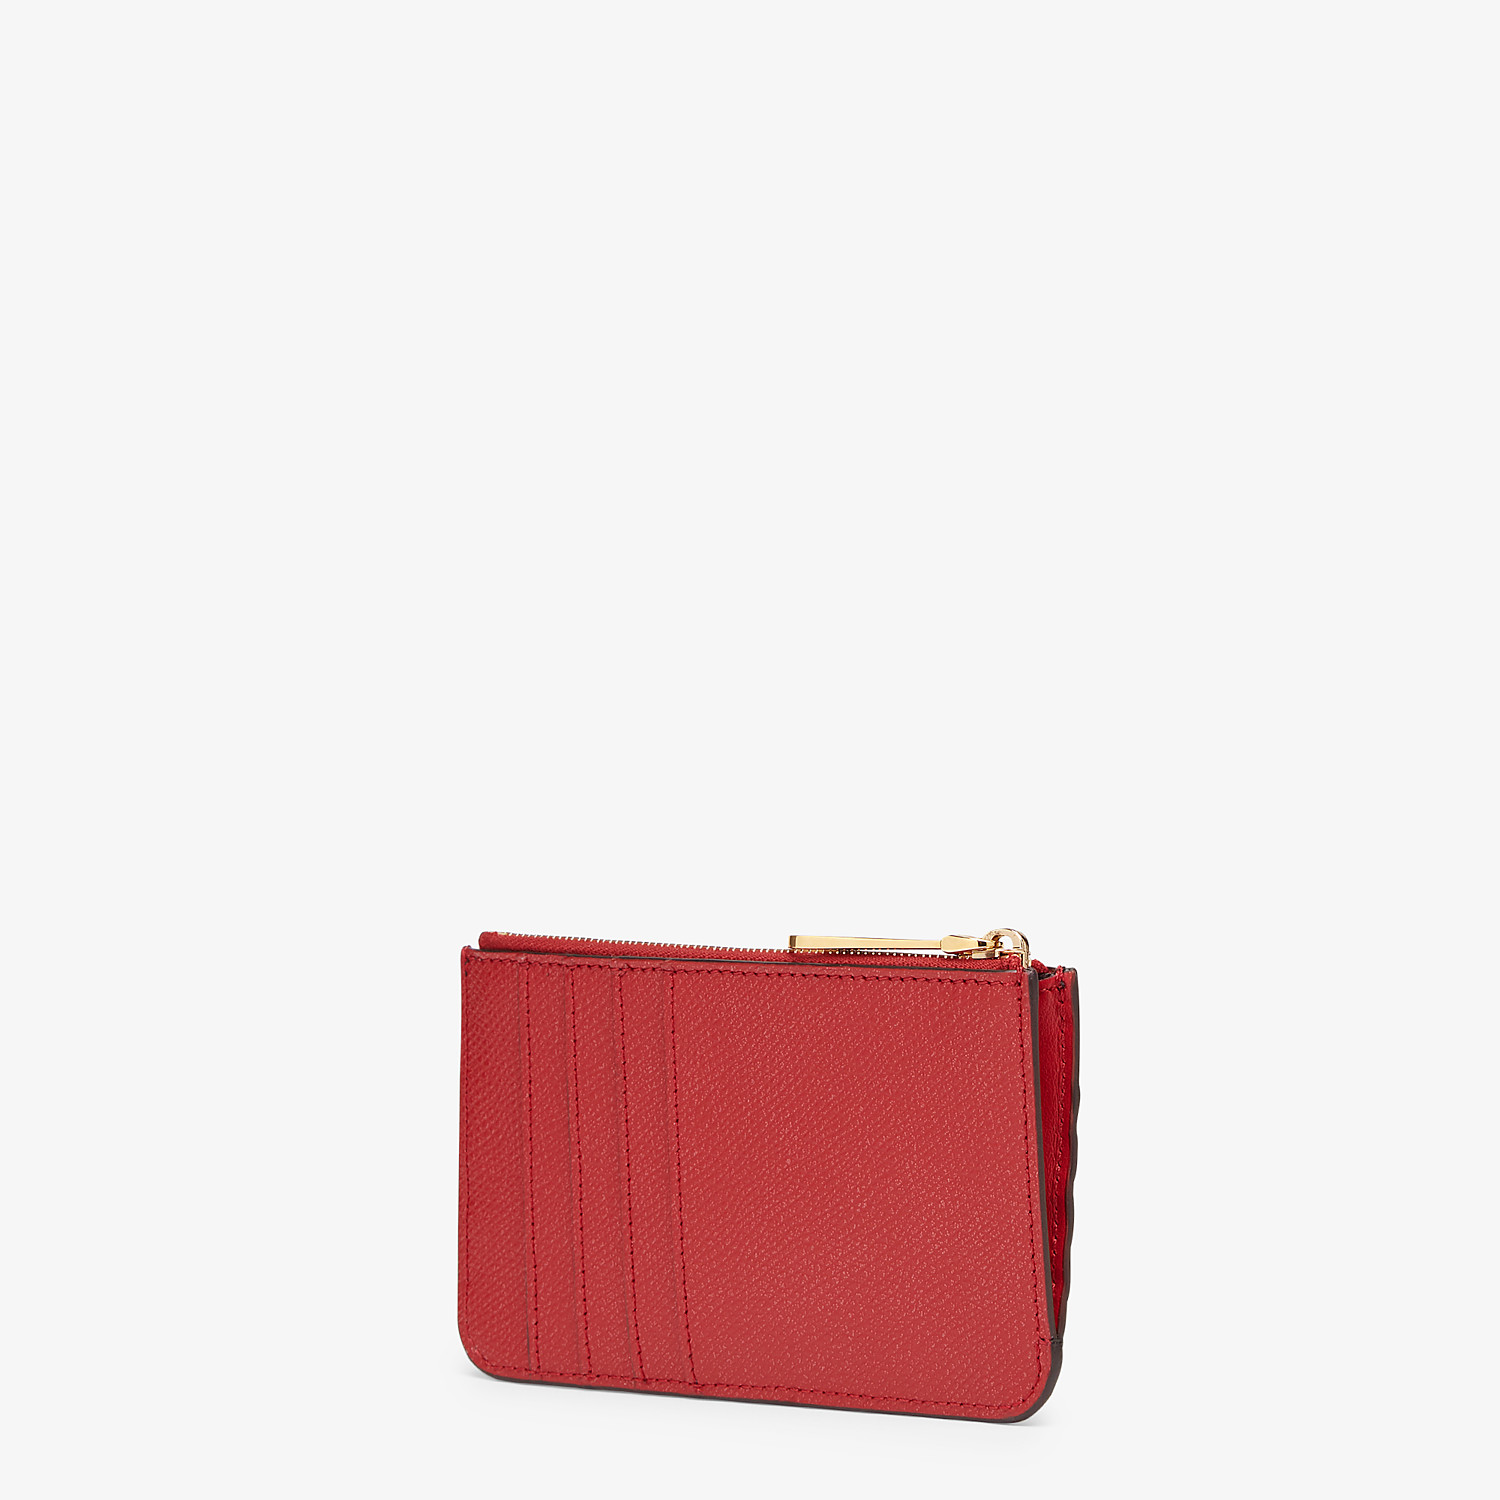 FENDI KEY CASE POUCH - Red leather pouch - view 2 detail